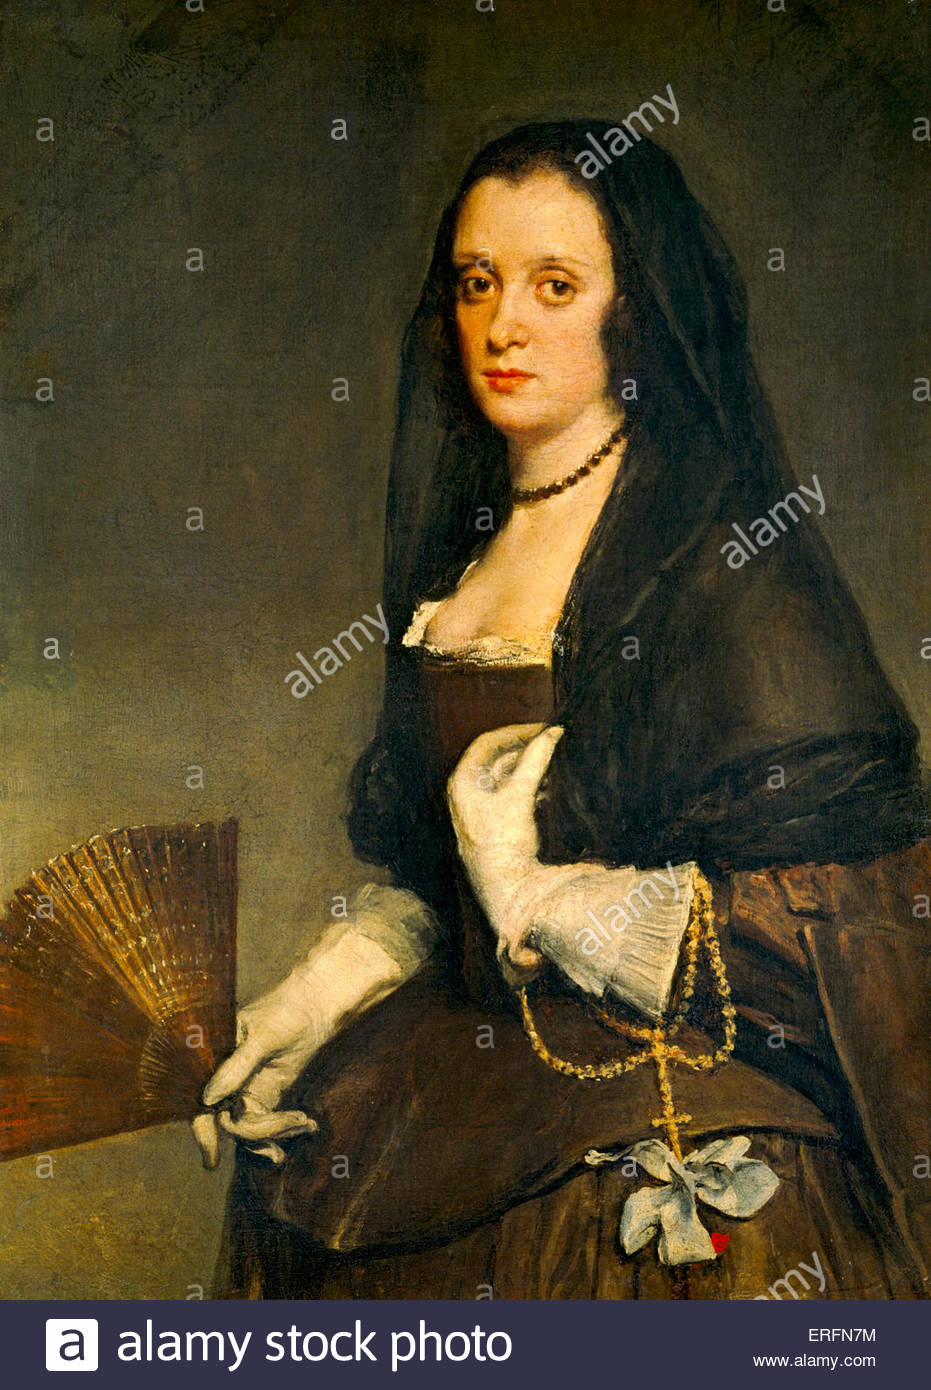 The Lady with a Fan by Diego Velázquez, c.1630-50 Painting  Spanish painter, 6 June 1599 – 6 August 1660.  - Stock Image